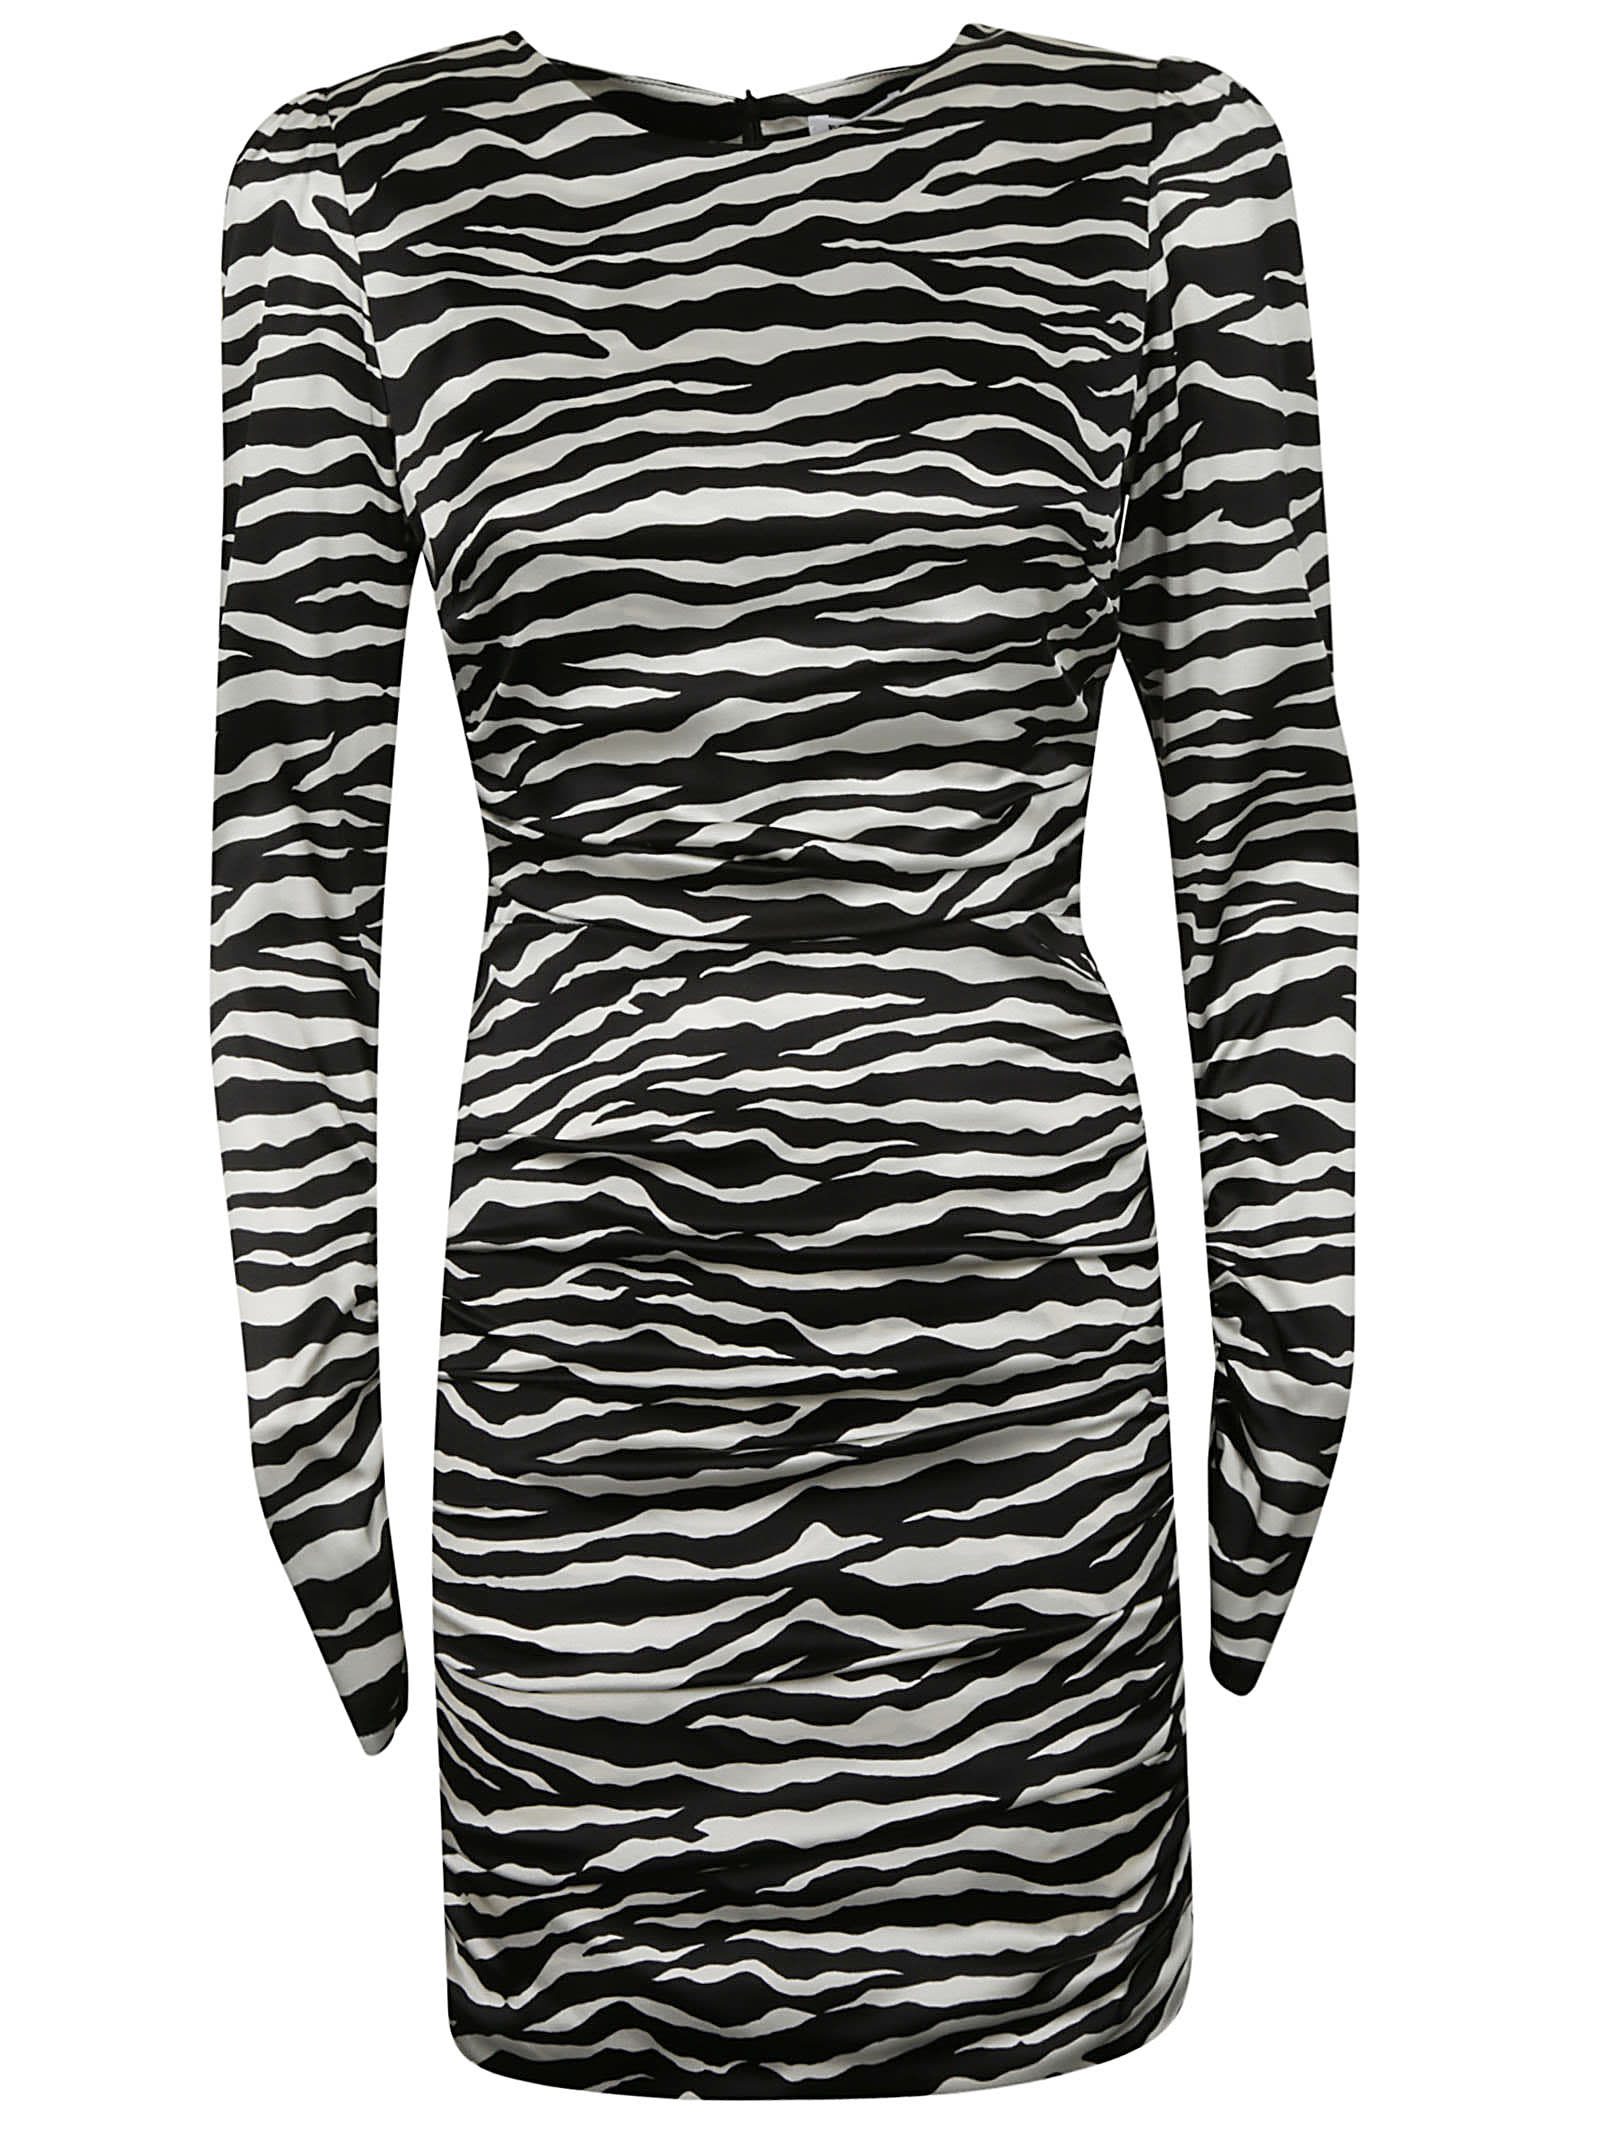 Parosh Zebra Dress